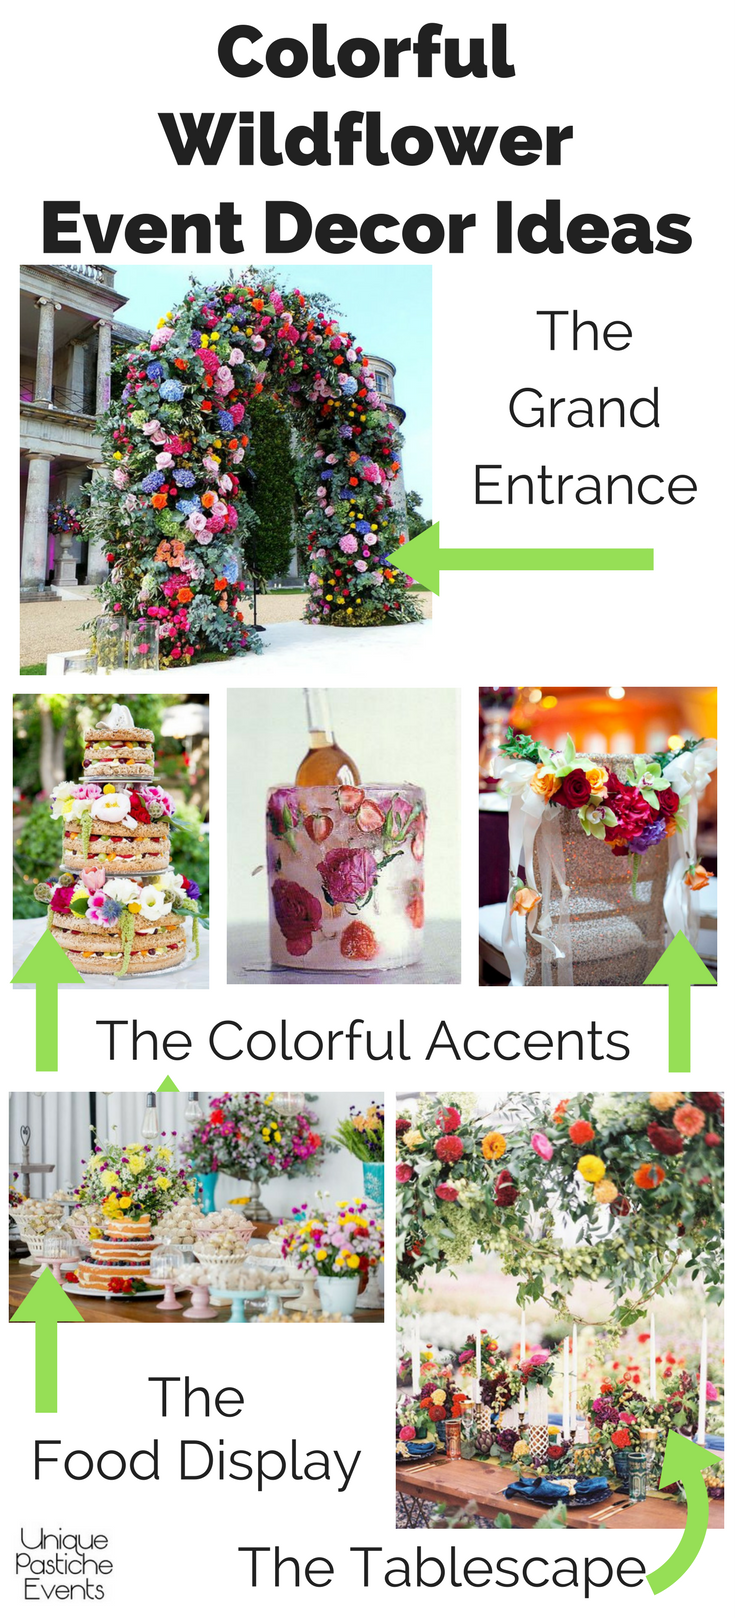 Colorful Wildflower Party Ideas